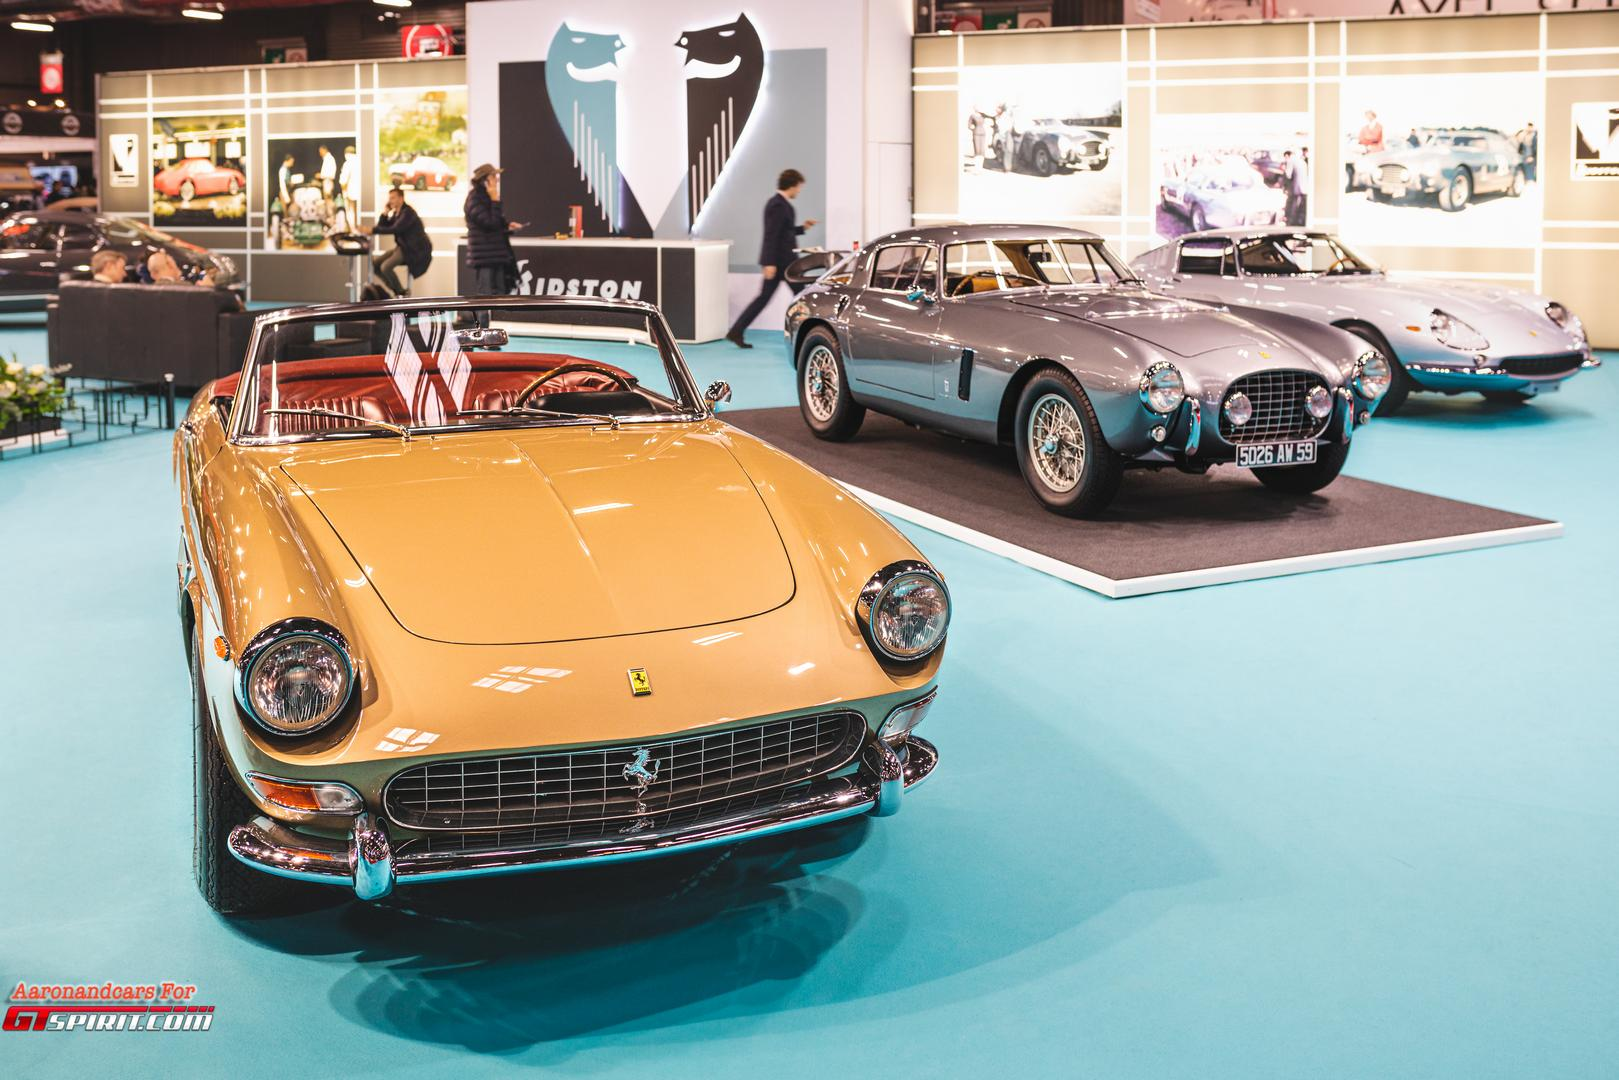 Retromobile 2020 Ferrari 250